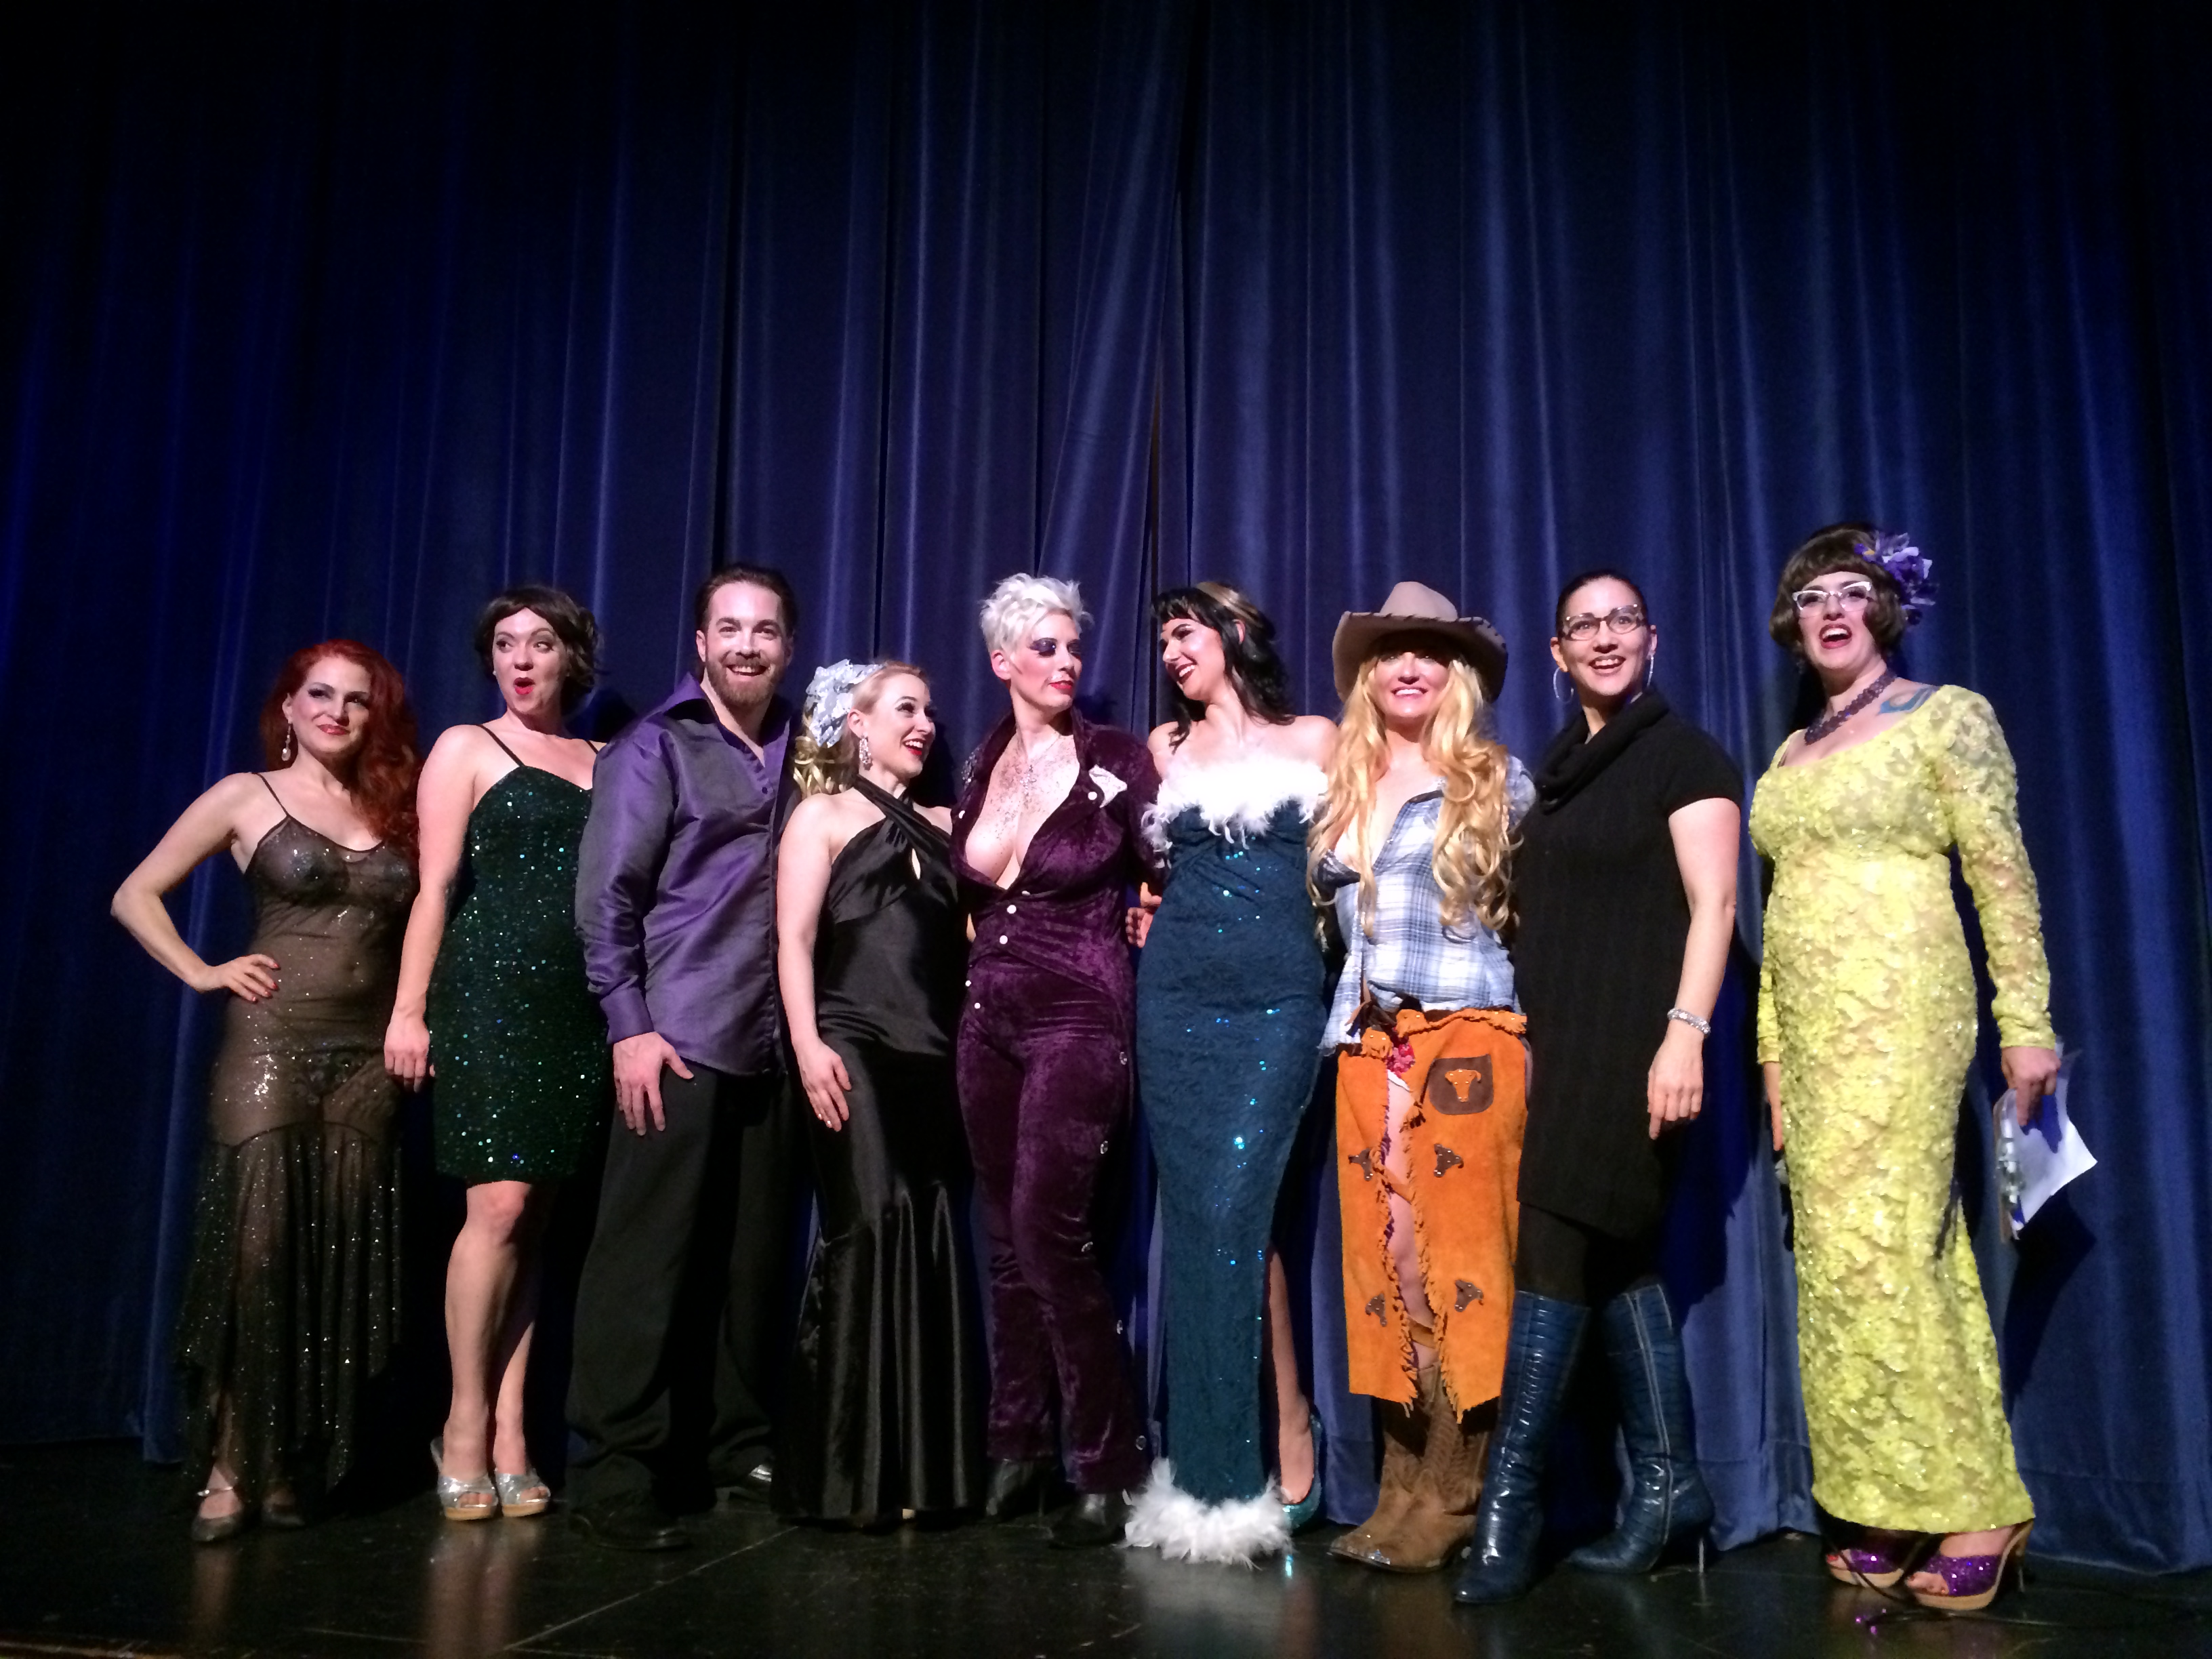 Academy of Burlesque alumni invitational 2014 Seattle